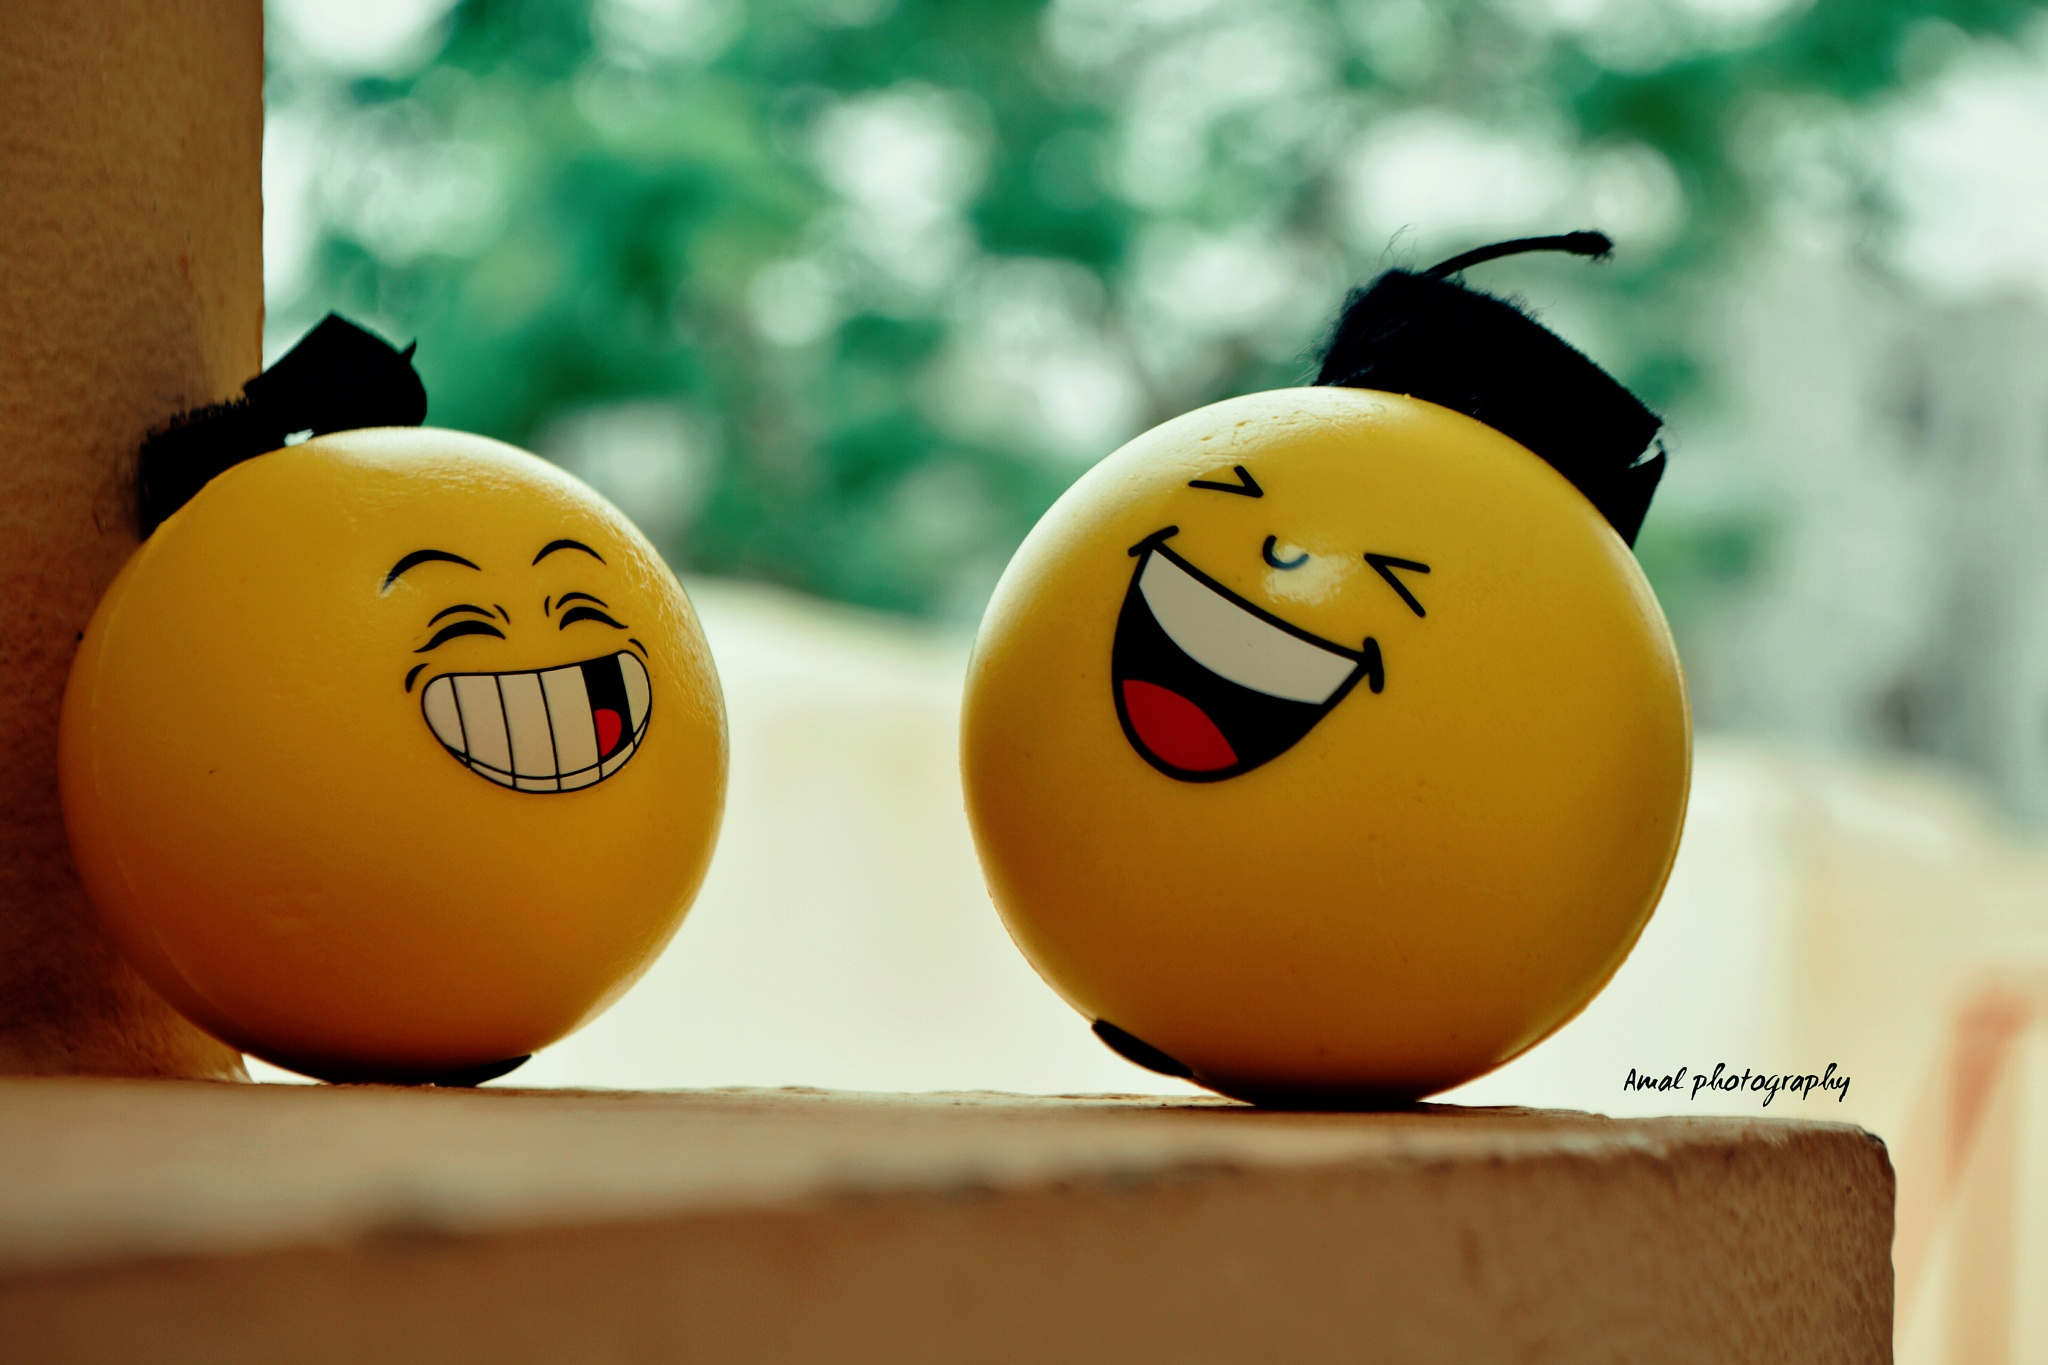 smiles  by Amal